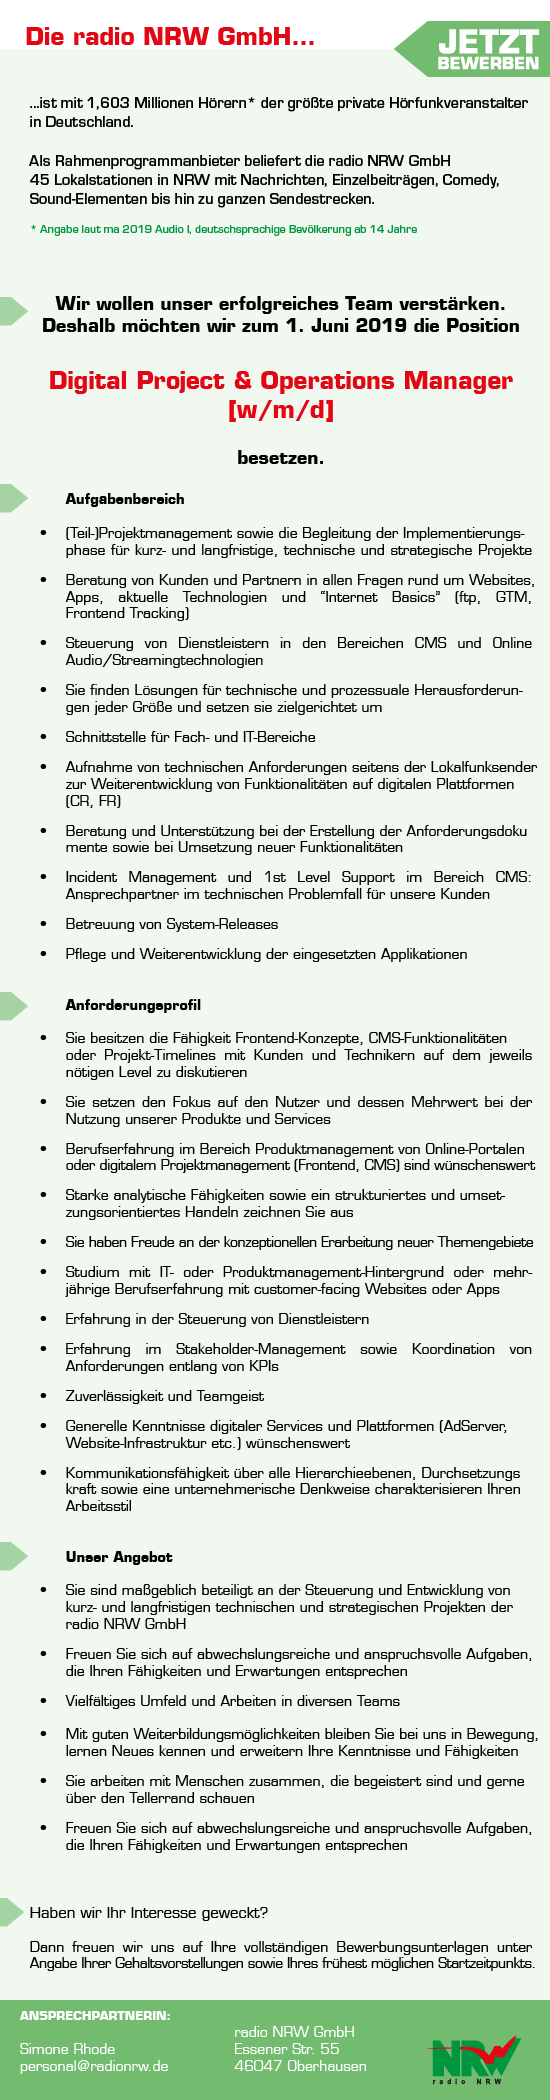 radio NRW sucht Digital Project & Operations Manager [w/m/d]